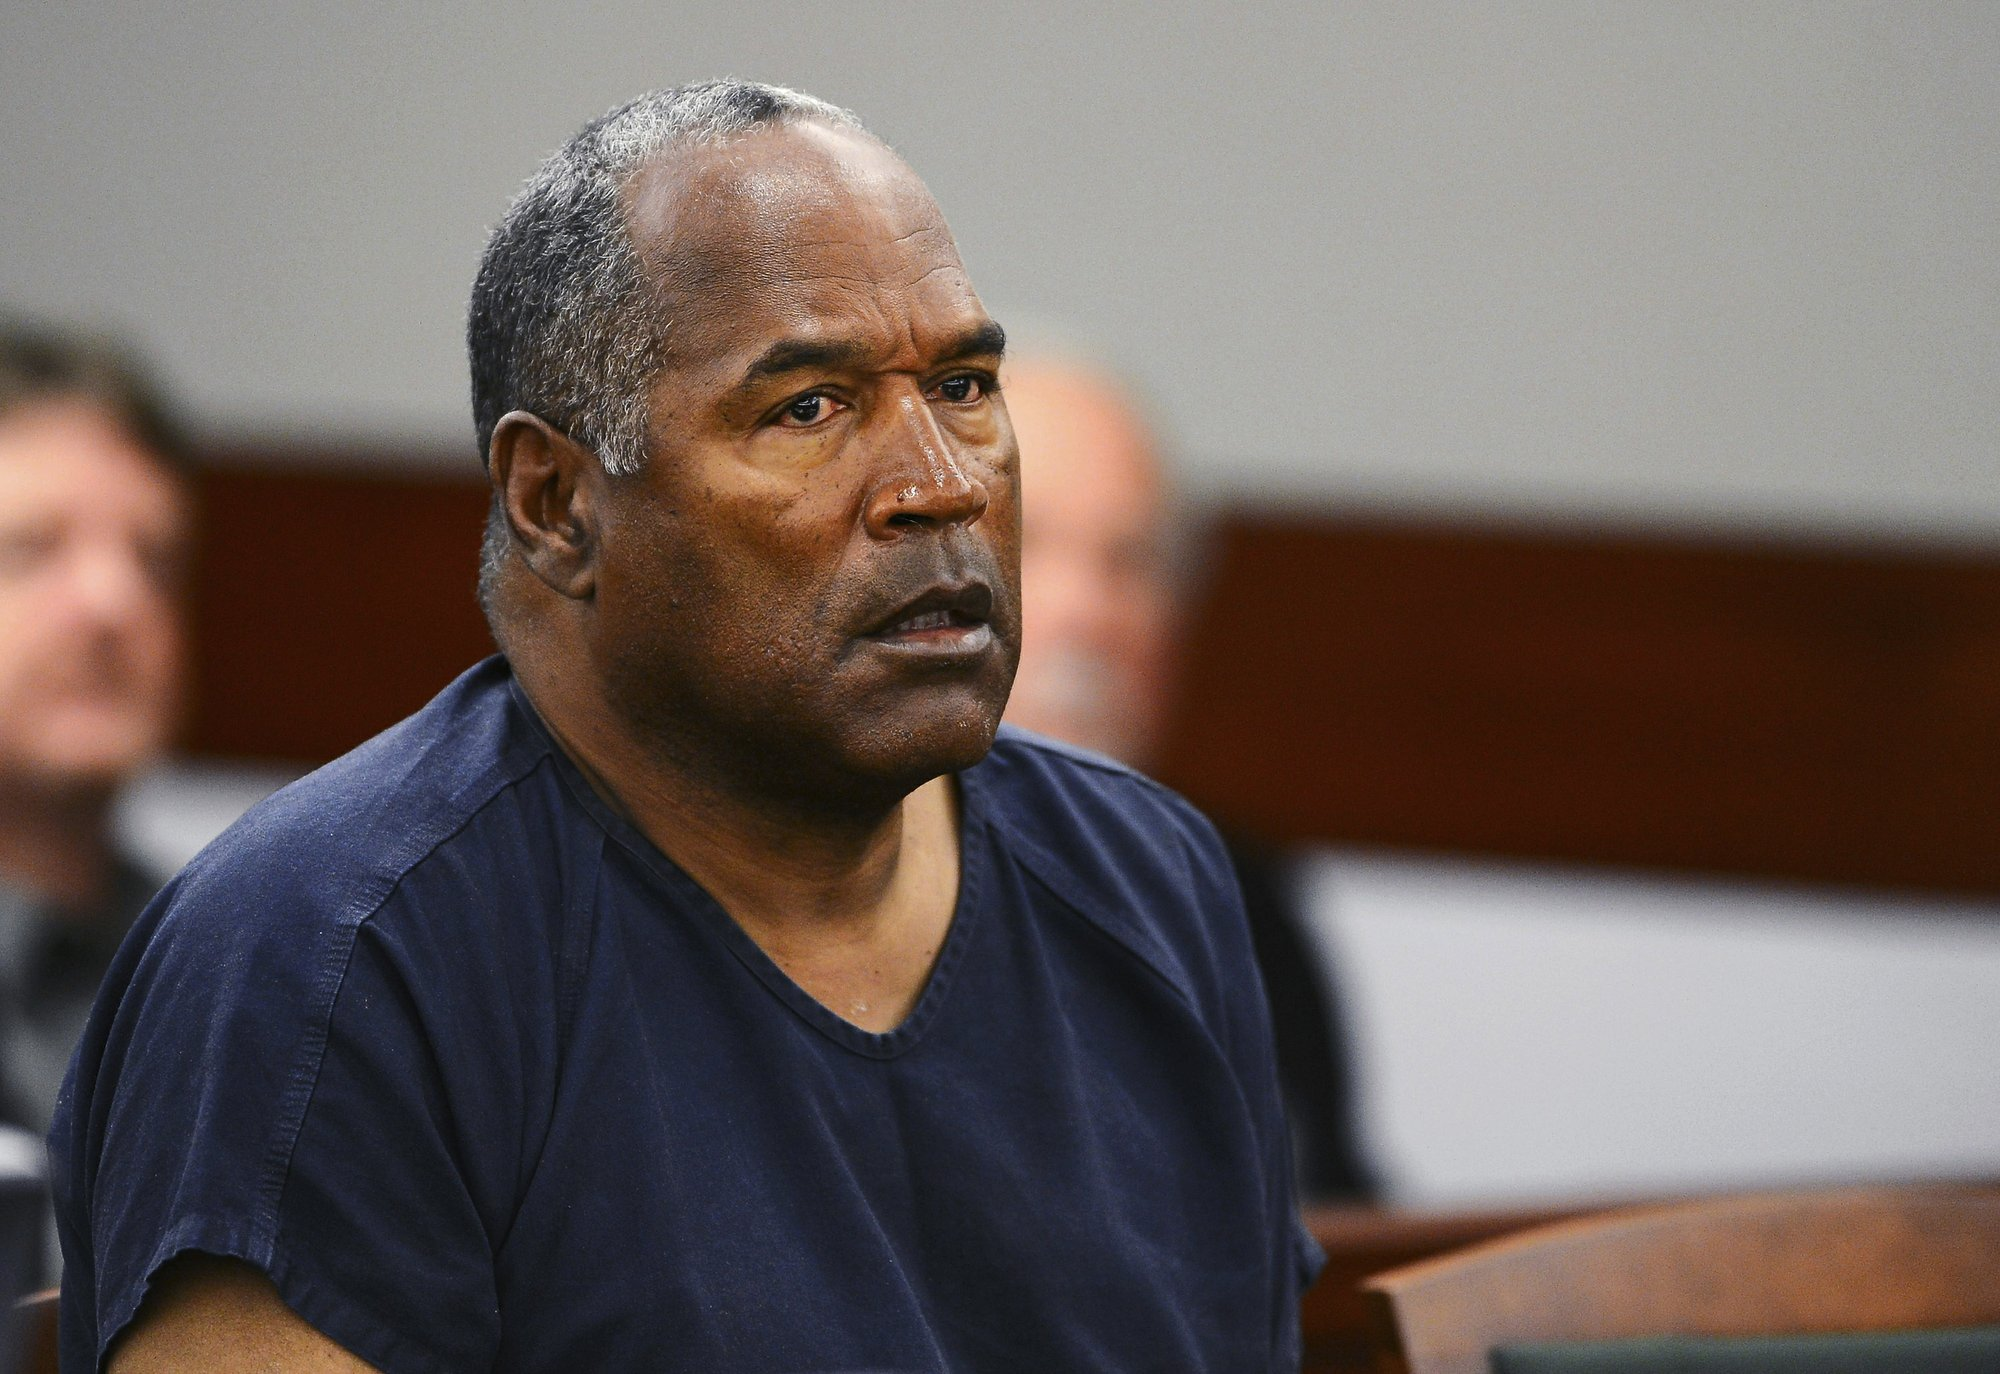 O.J. Simpson case helped bring spousal abuse out of shadows